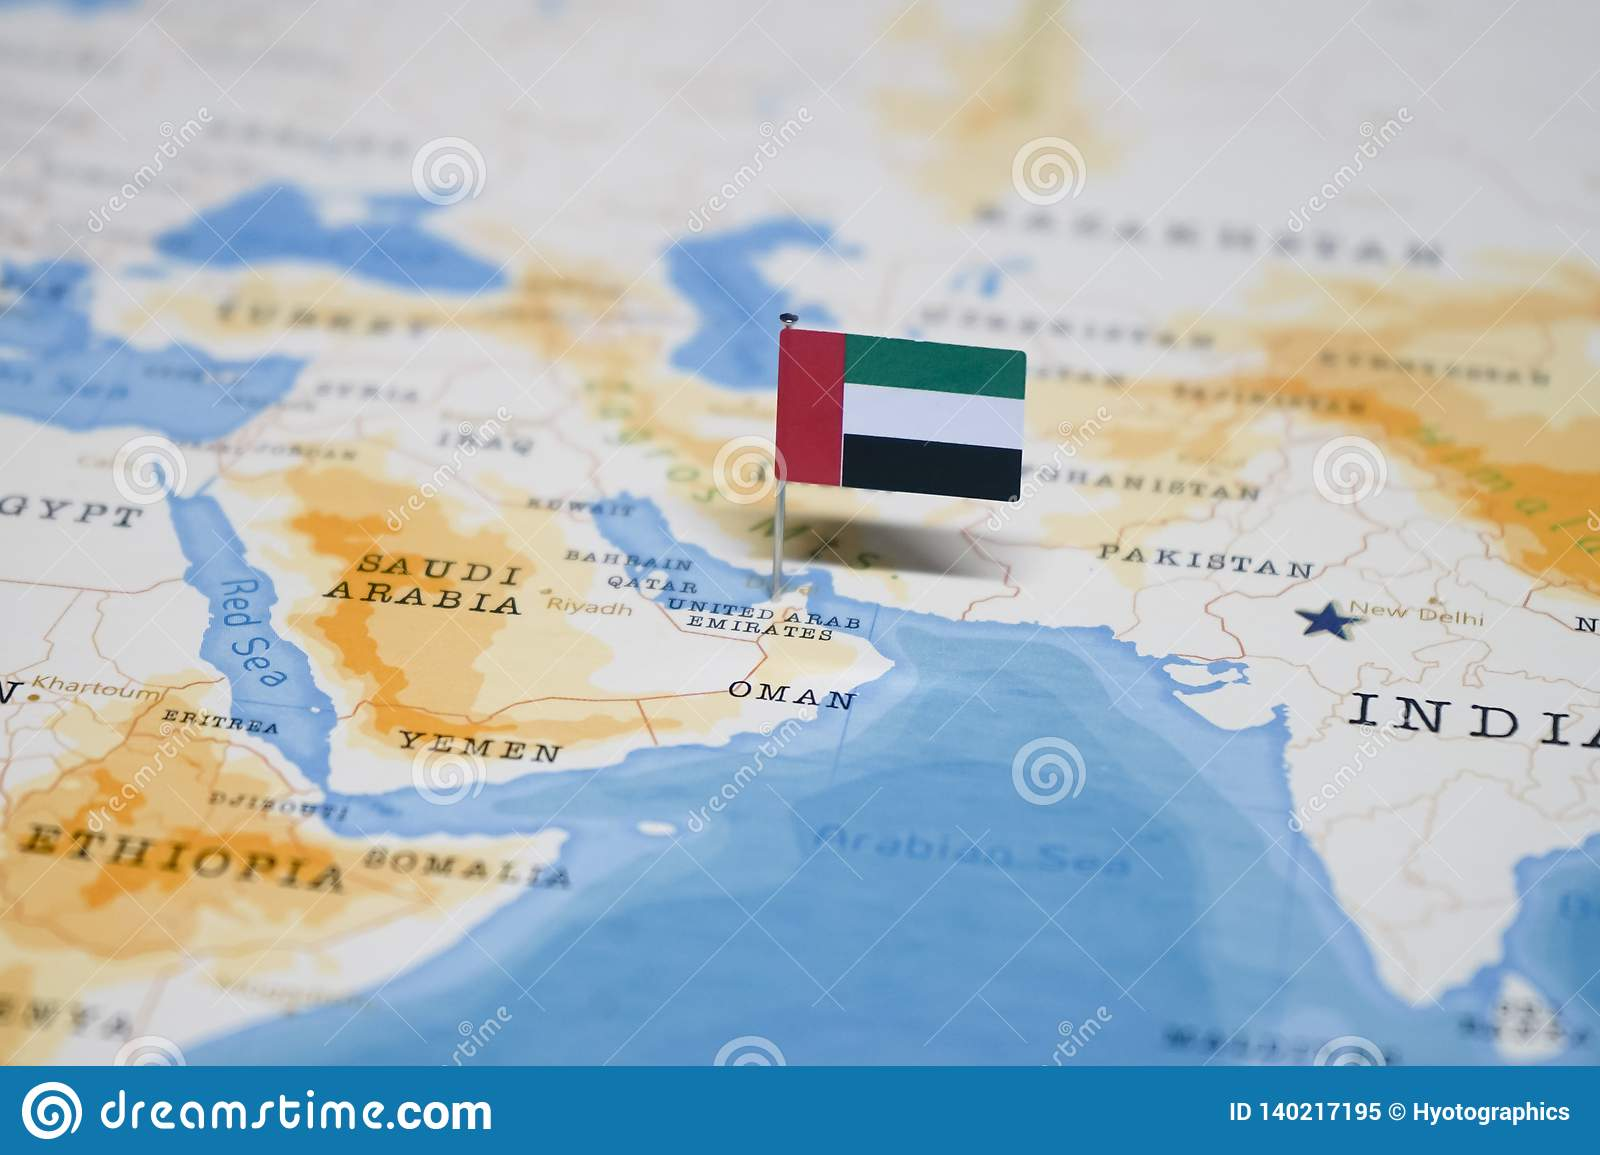 The Flag Of United Arab Emirates In The World Map Stock Image Image Of Country Arrival 140217195